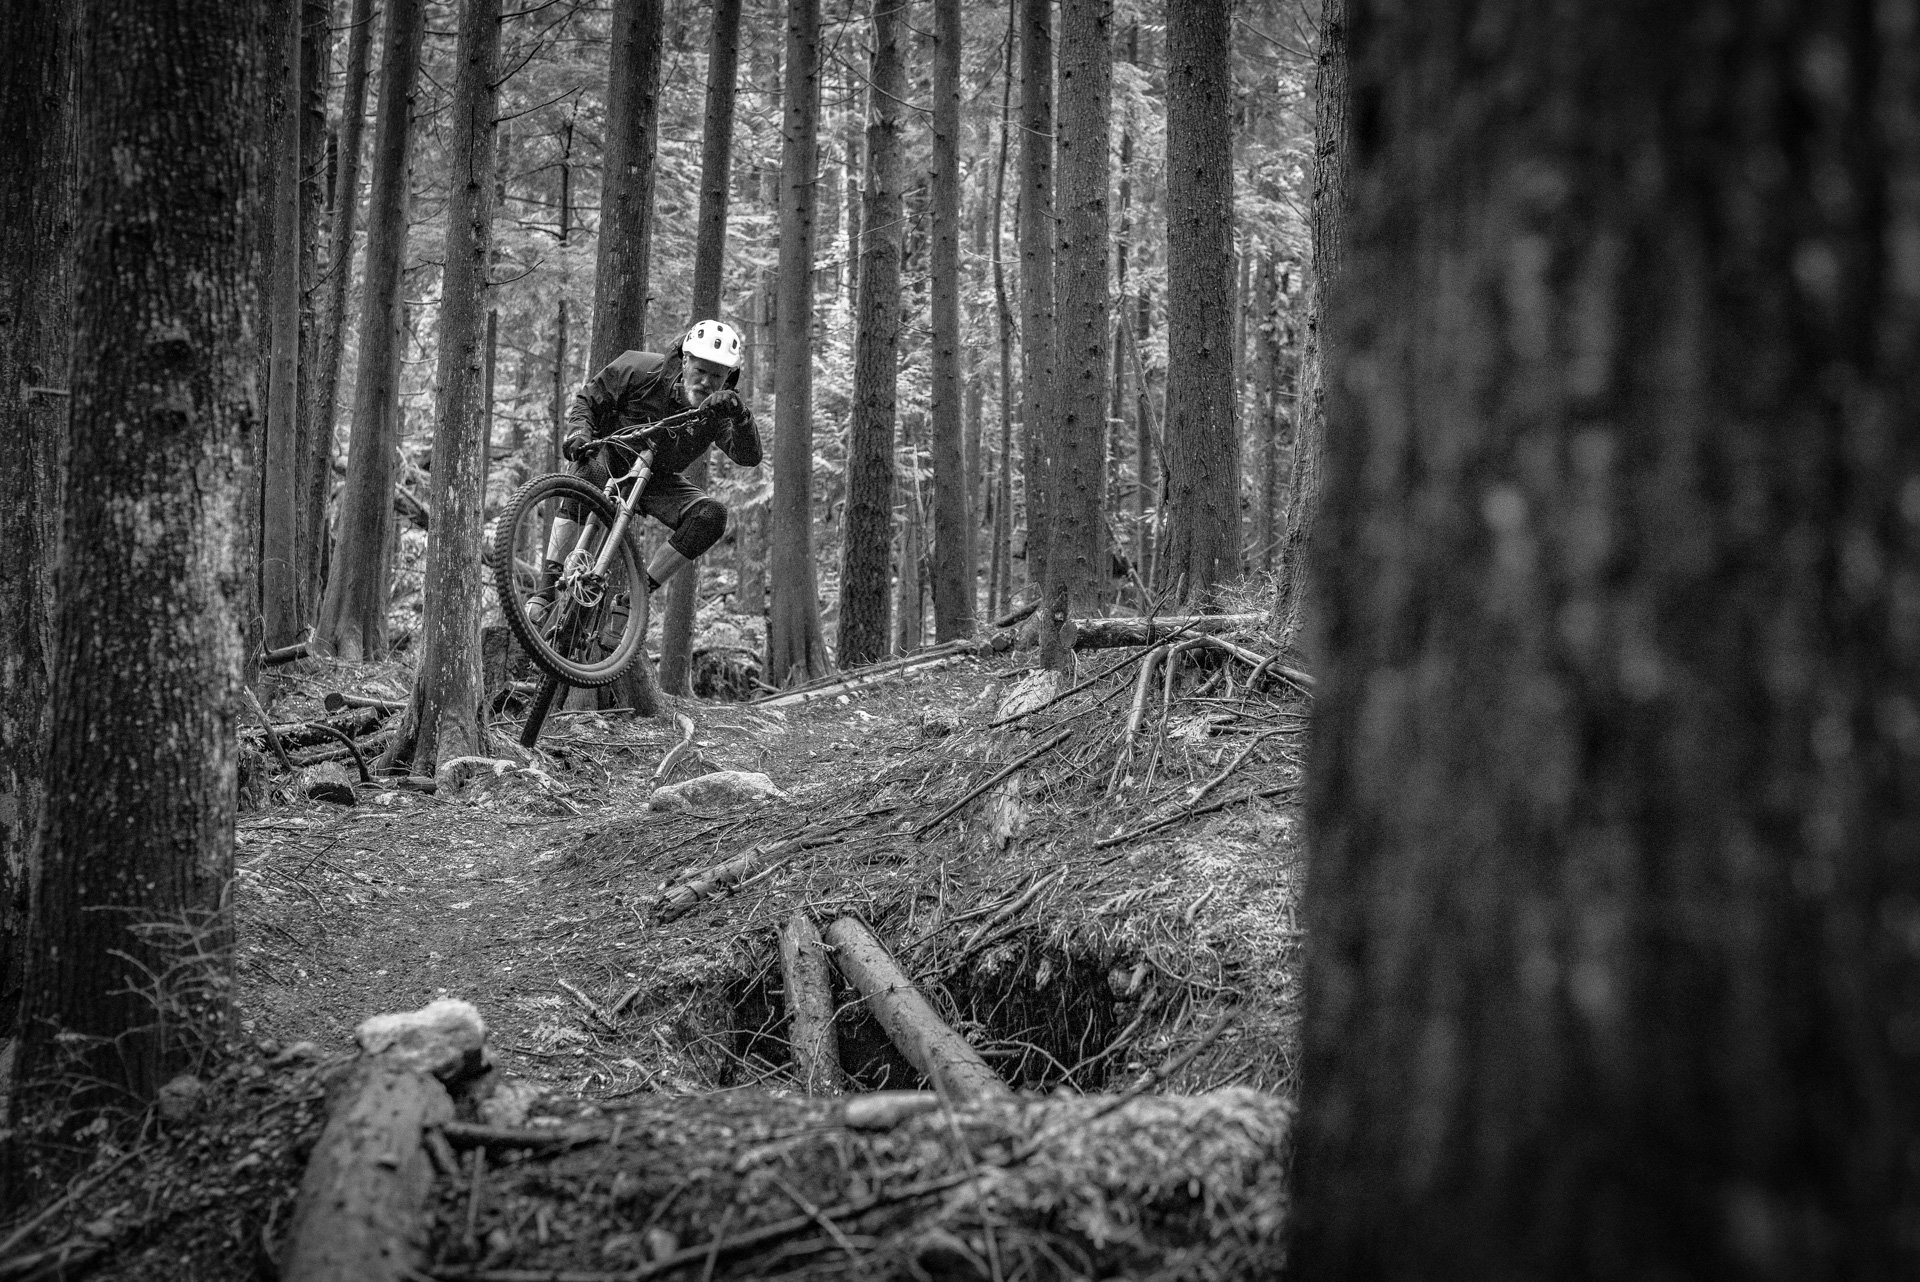 nsmb_2017_geareview_specialized_enduro29_PerrySchebel-7631.jpg